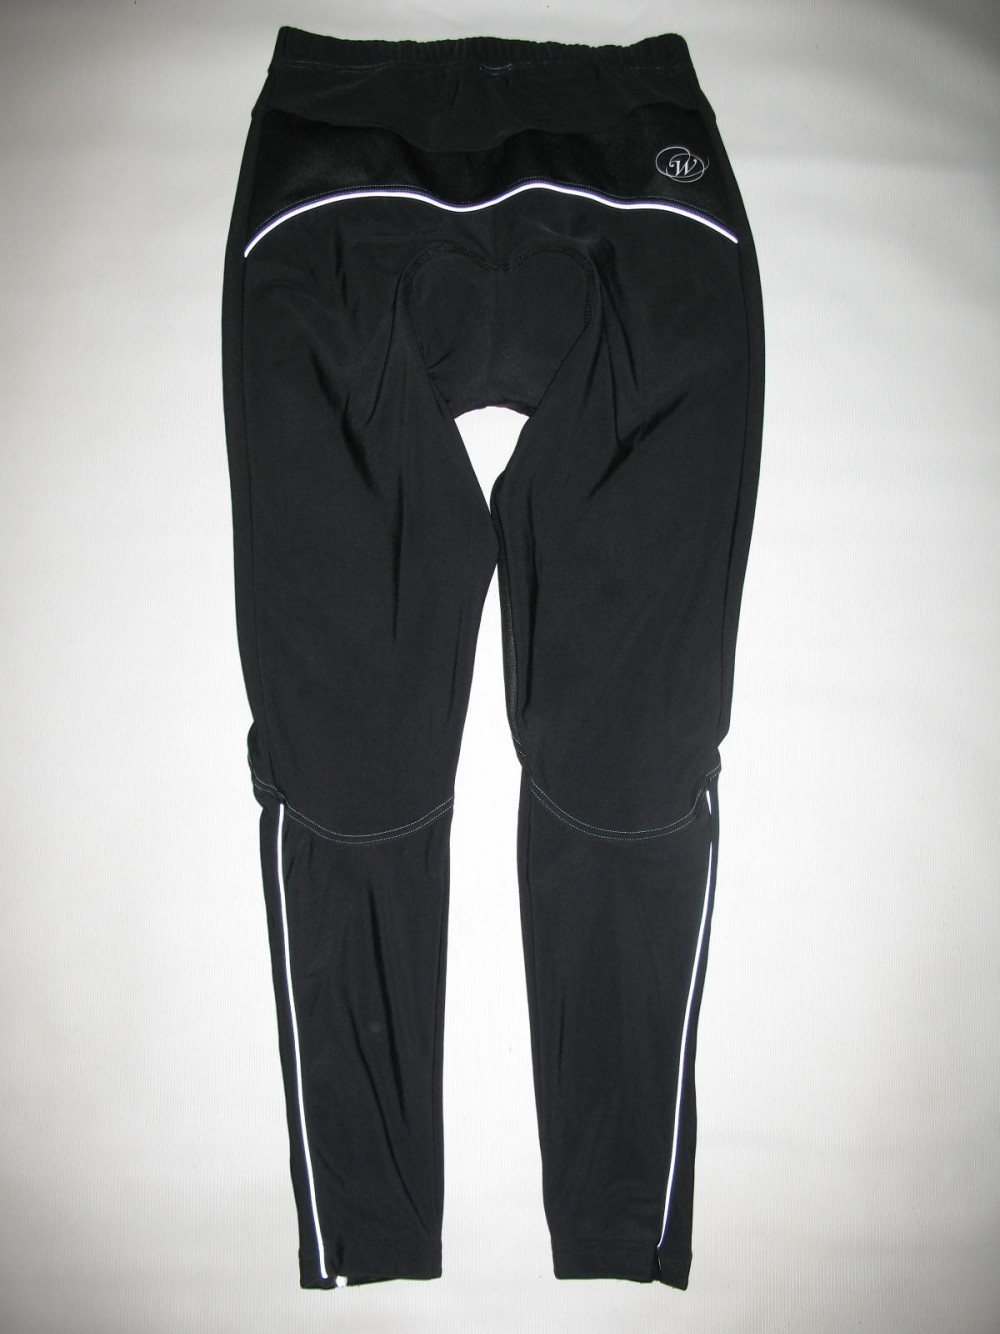 Велобрюки BTWIN collant sport thermal pants lady (размер L/M) - 2